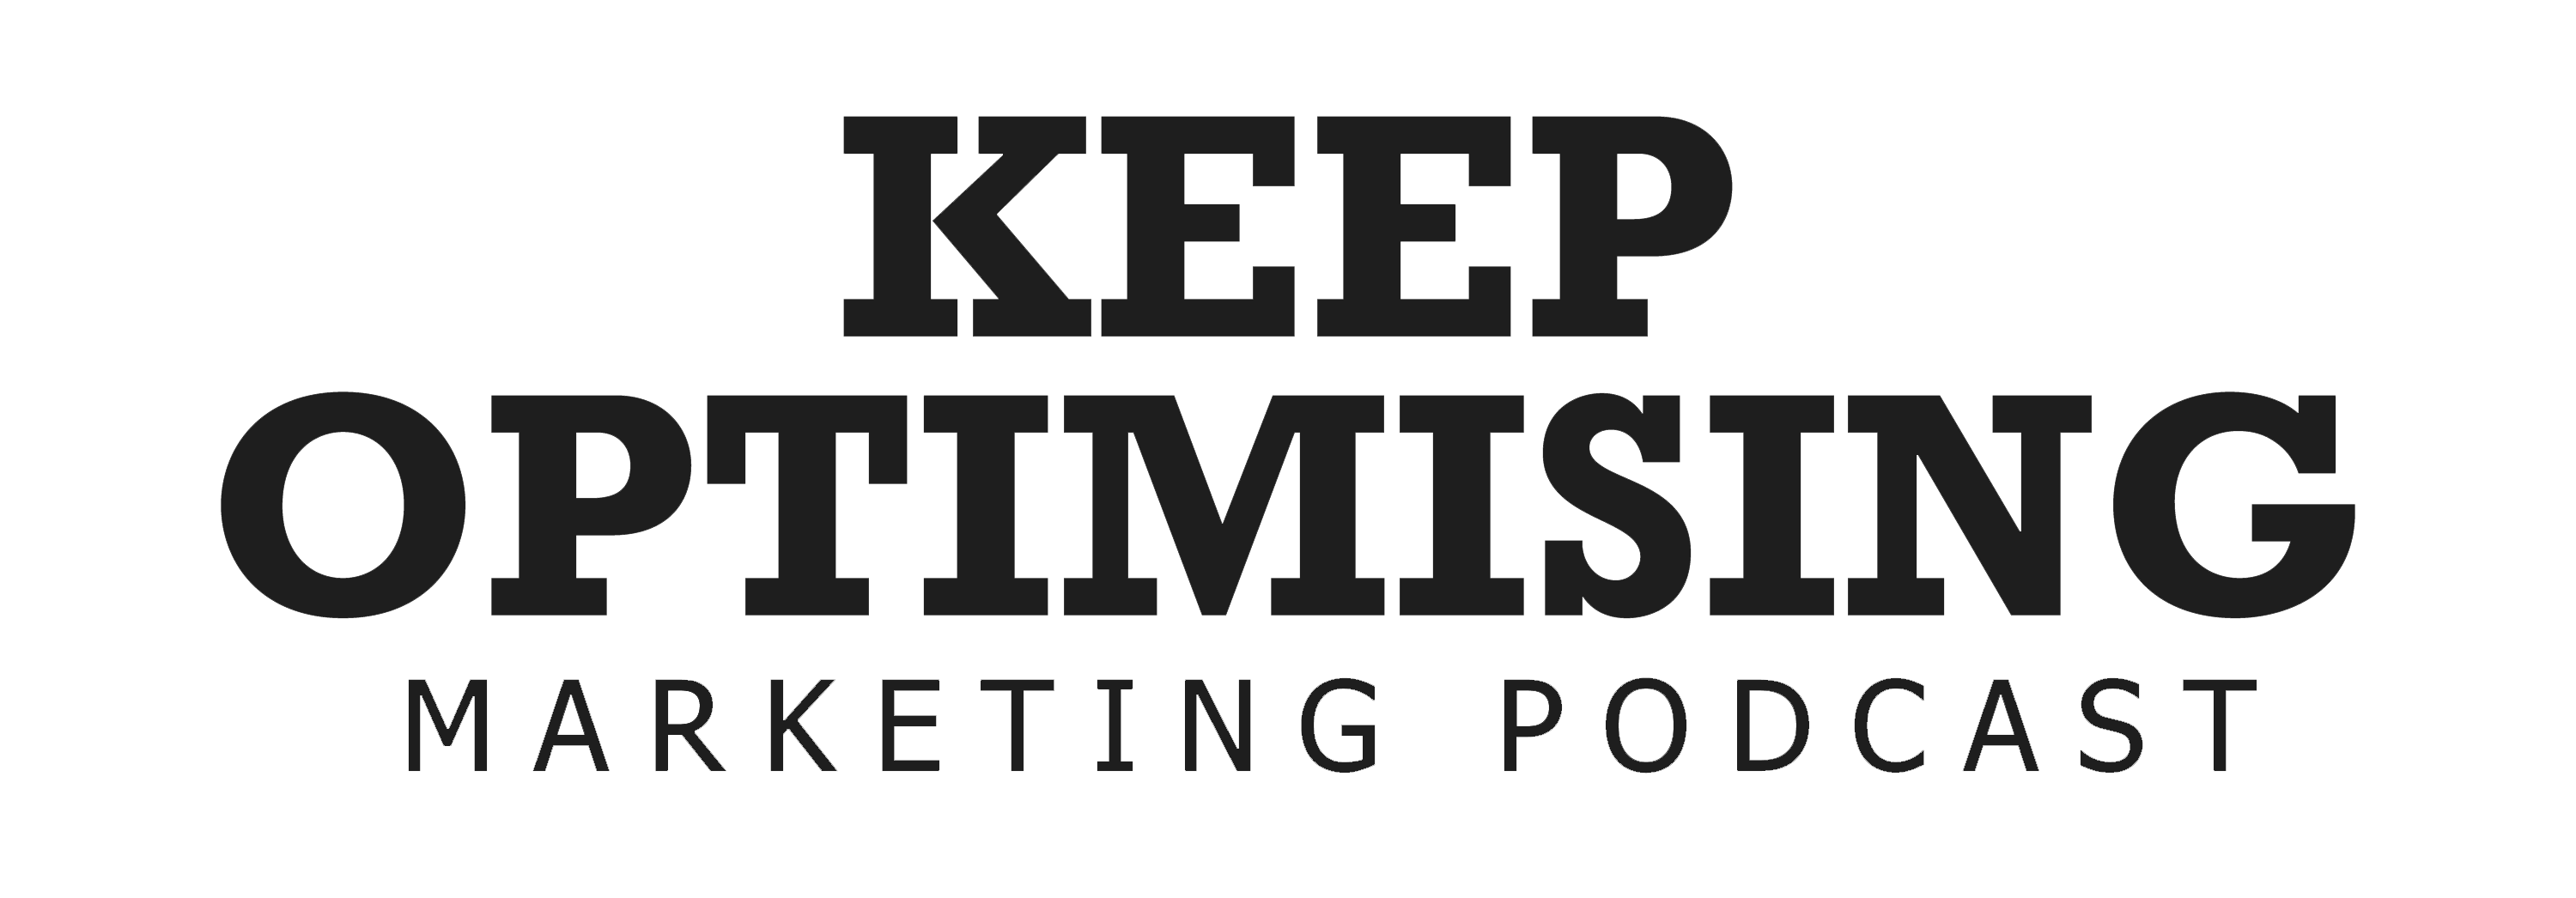 Jessica Totillo Coster Featured on the Keep Optimising Marketing Podcast